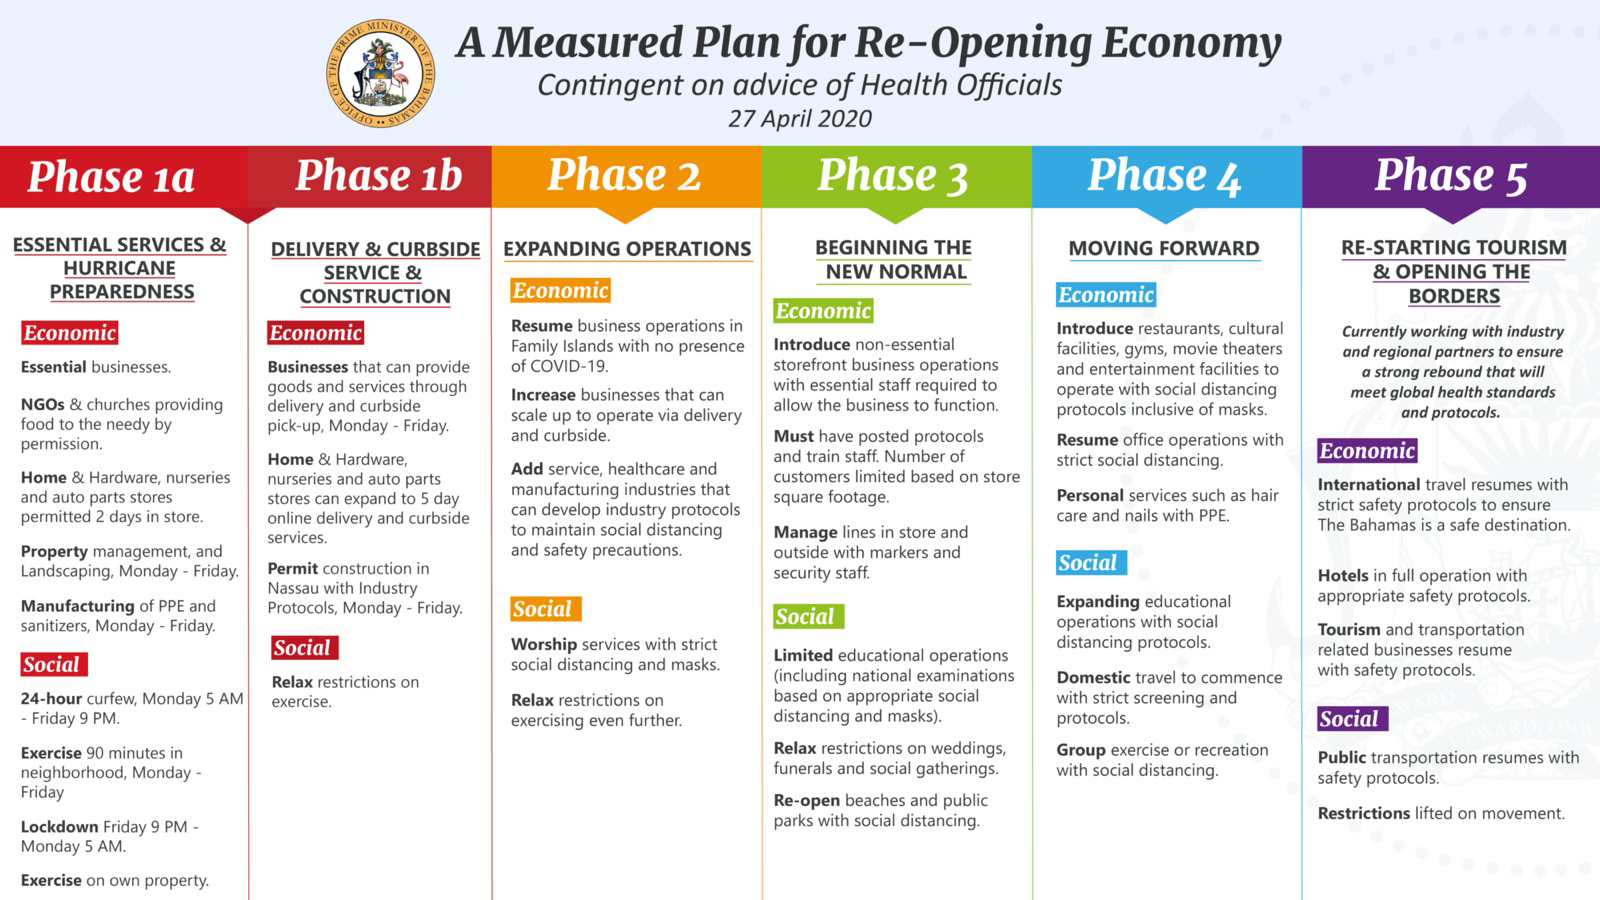 COVID-19 A Measured Plan For Re-Opening The Economy